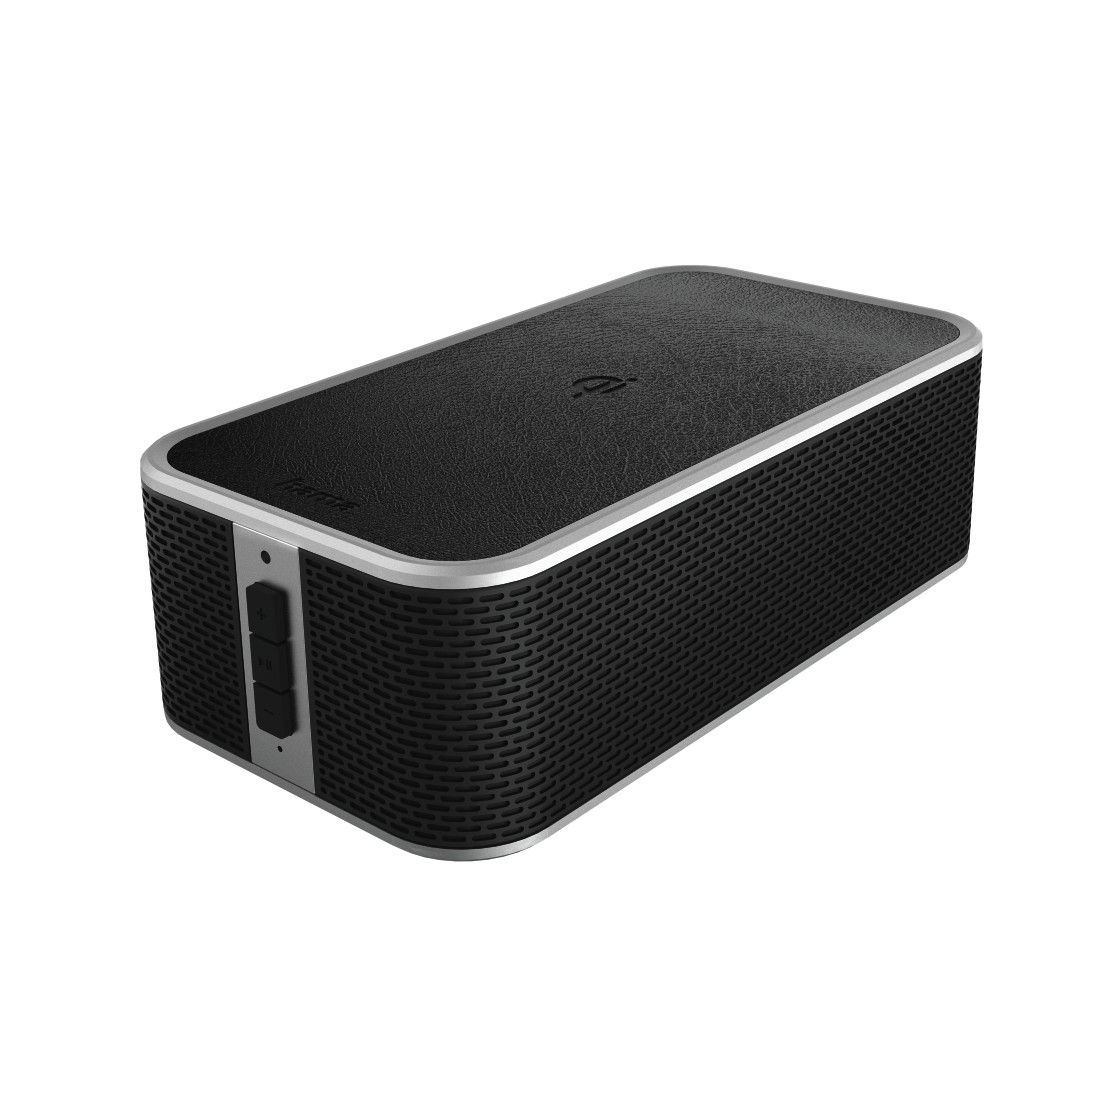 abx2 High-Res Image 2 - Hama, Bluetooth Speaker + Power Brick Qi Charger